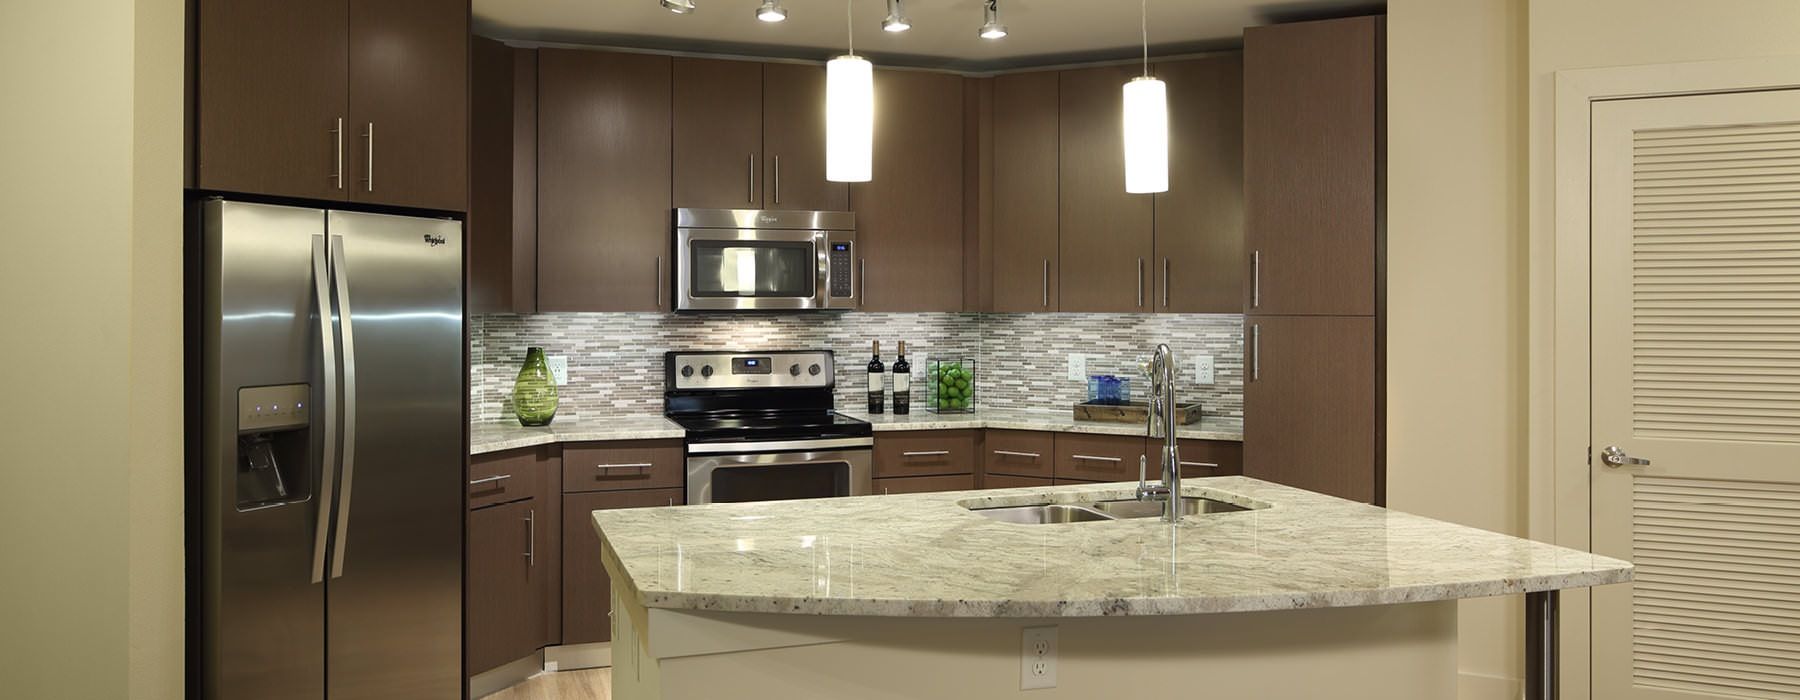 pendant lighting hangs over island in kitchen with stainless steel appliances